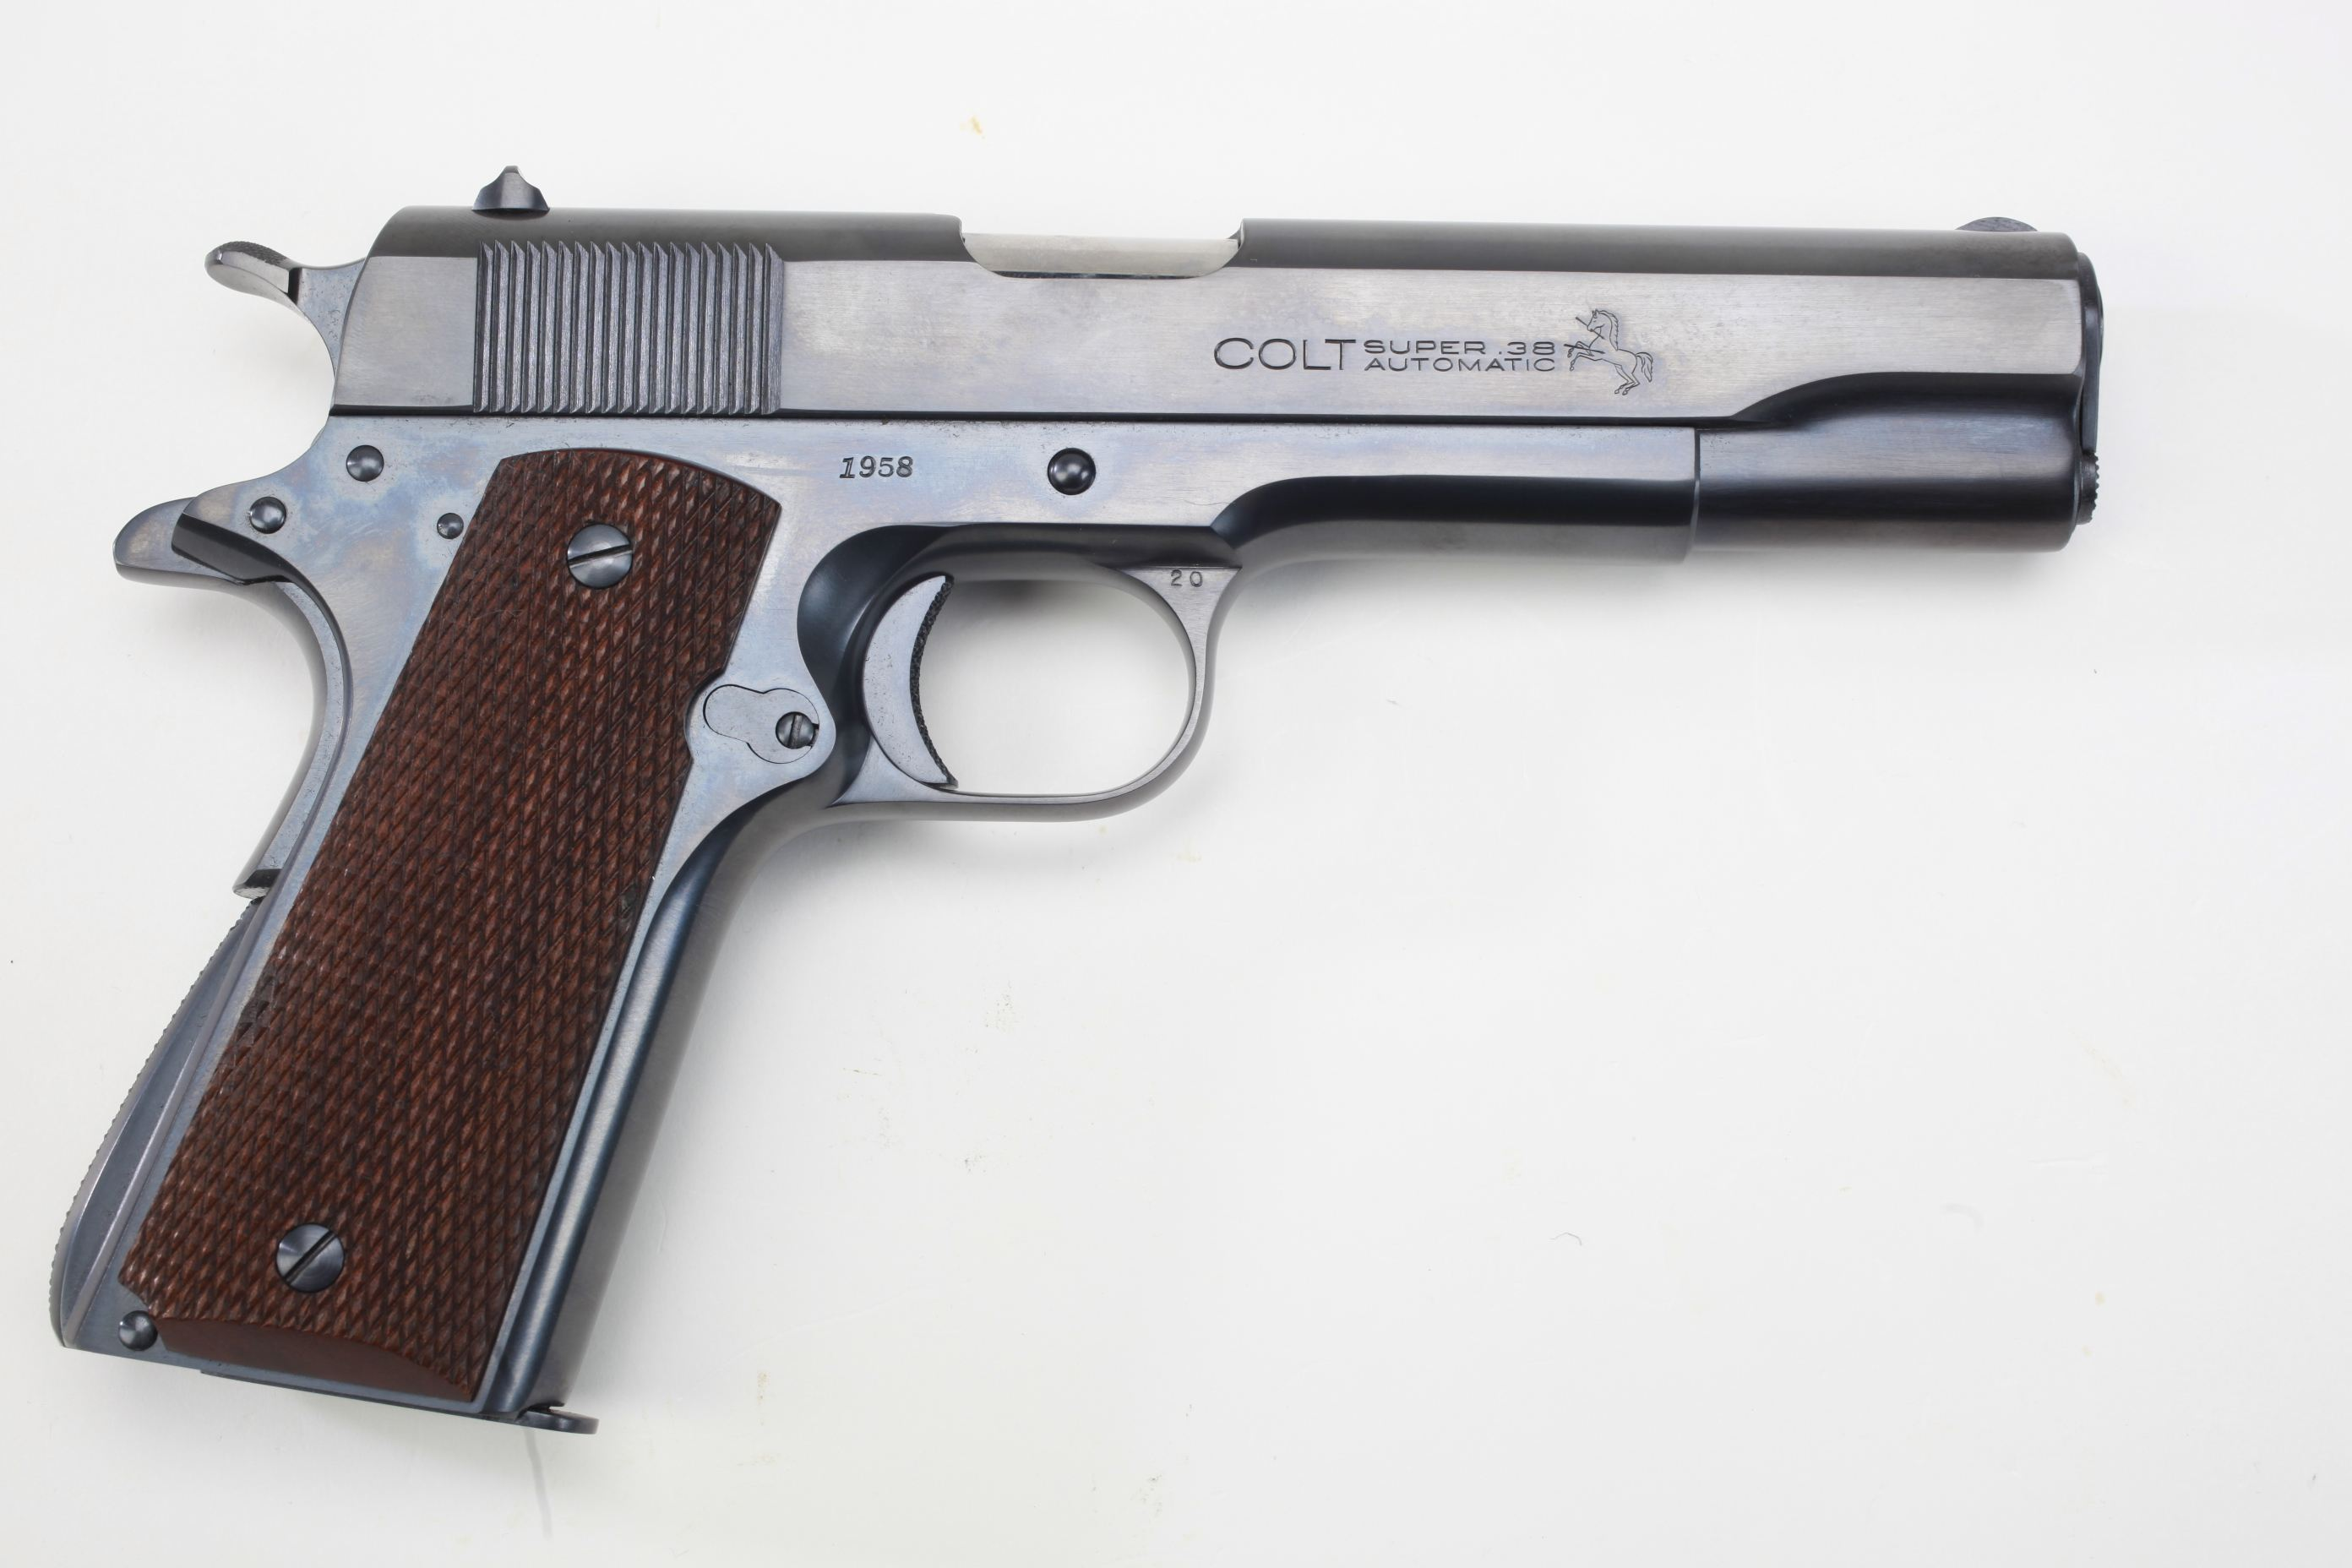 Colt Super 38 Semi Automatic Pistol